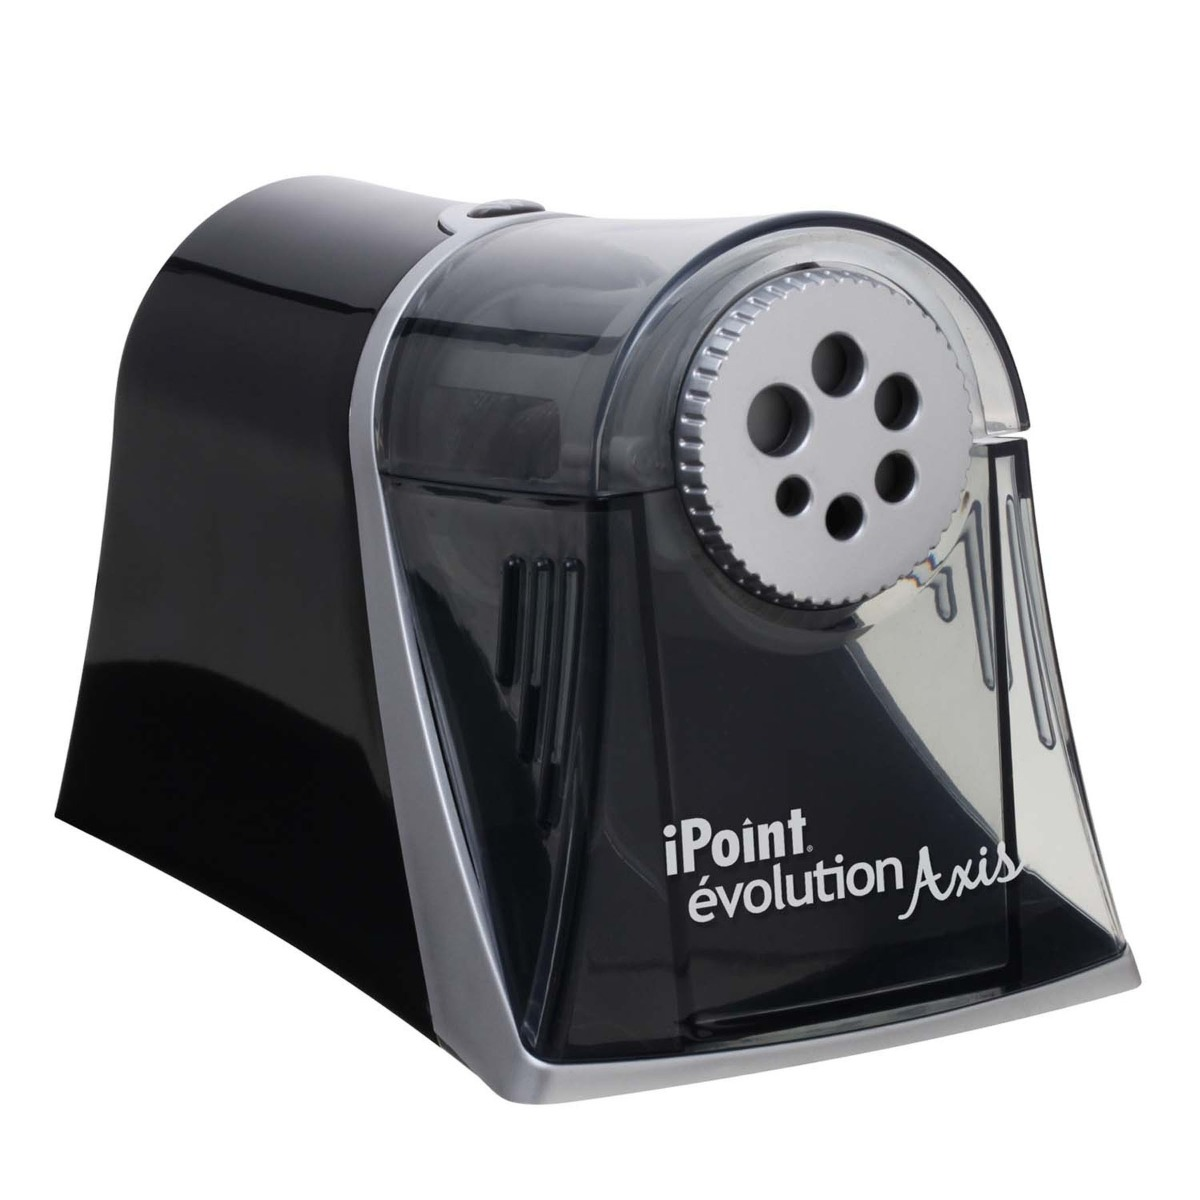 Westcott Electric iPoint Evolution Axis Heavy Duty Pencil Sharpener, Black and Silver (15509)